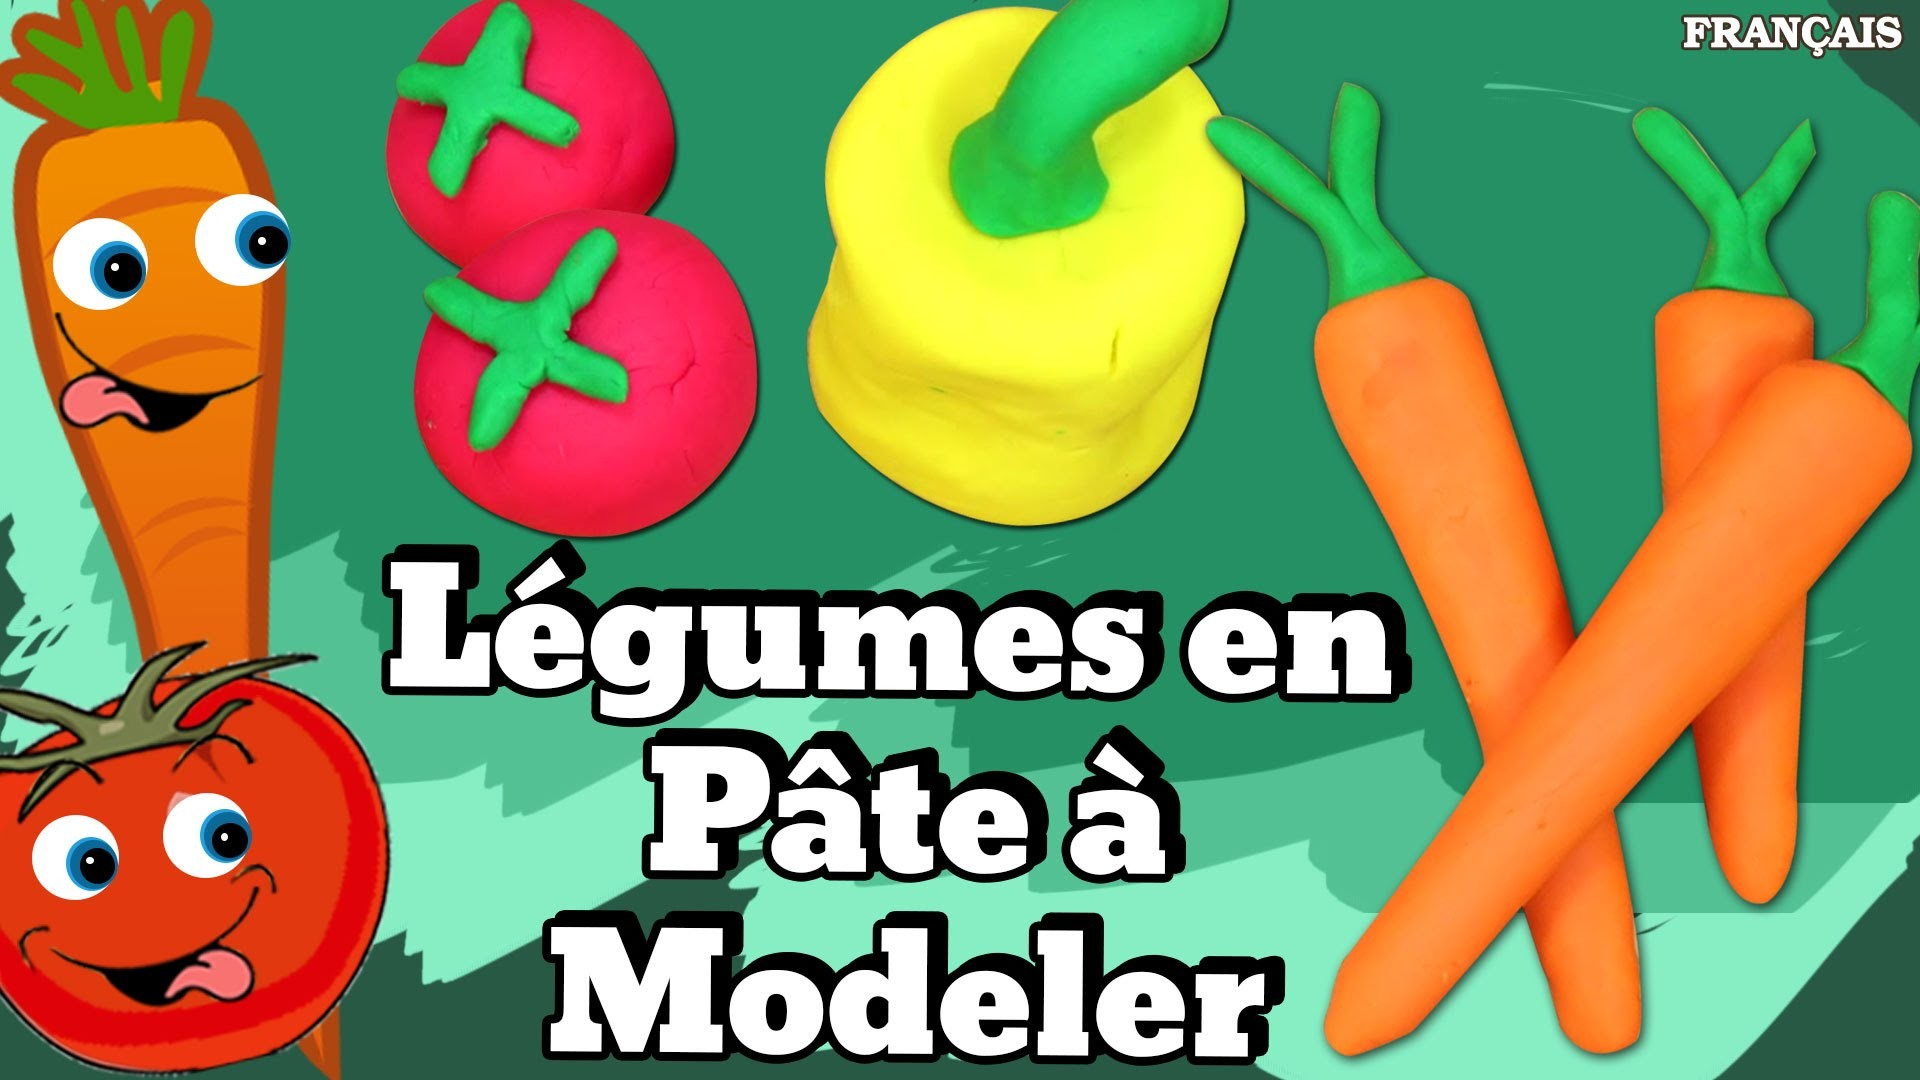 Francais Facile: How To Play Doh Vegetables in French | Légumes en Pâte à Modeler en Français